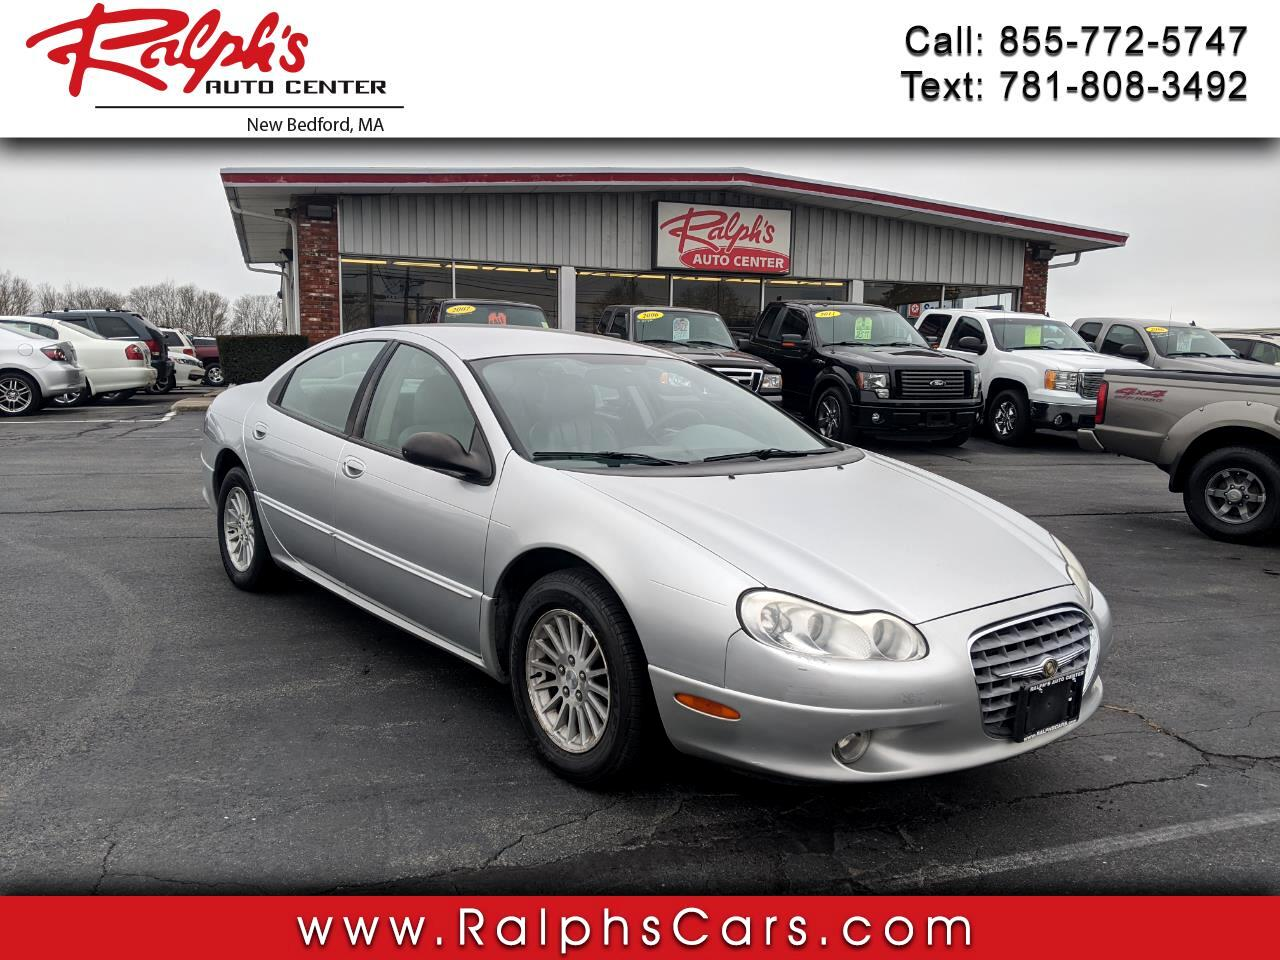 Chrysler Concorde 4dr Sdn LXi 2002